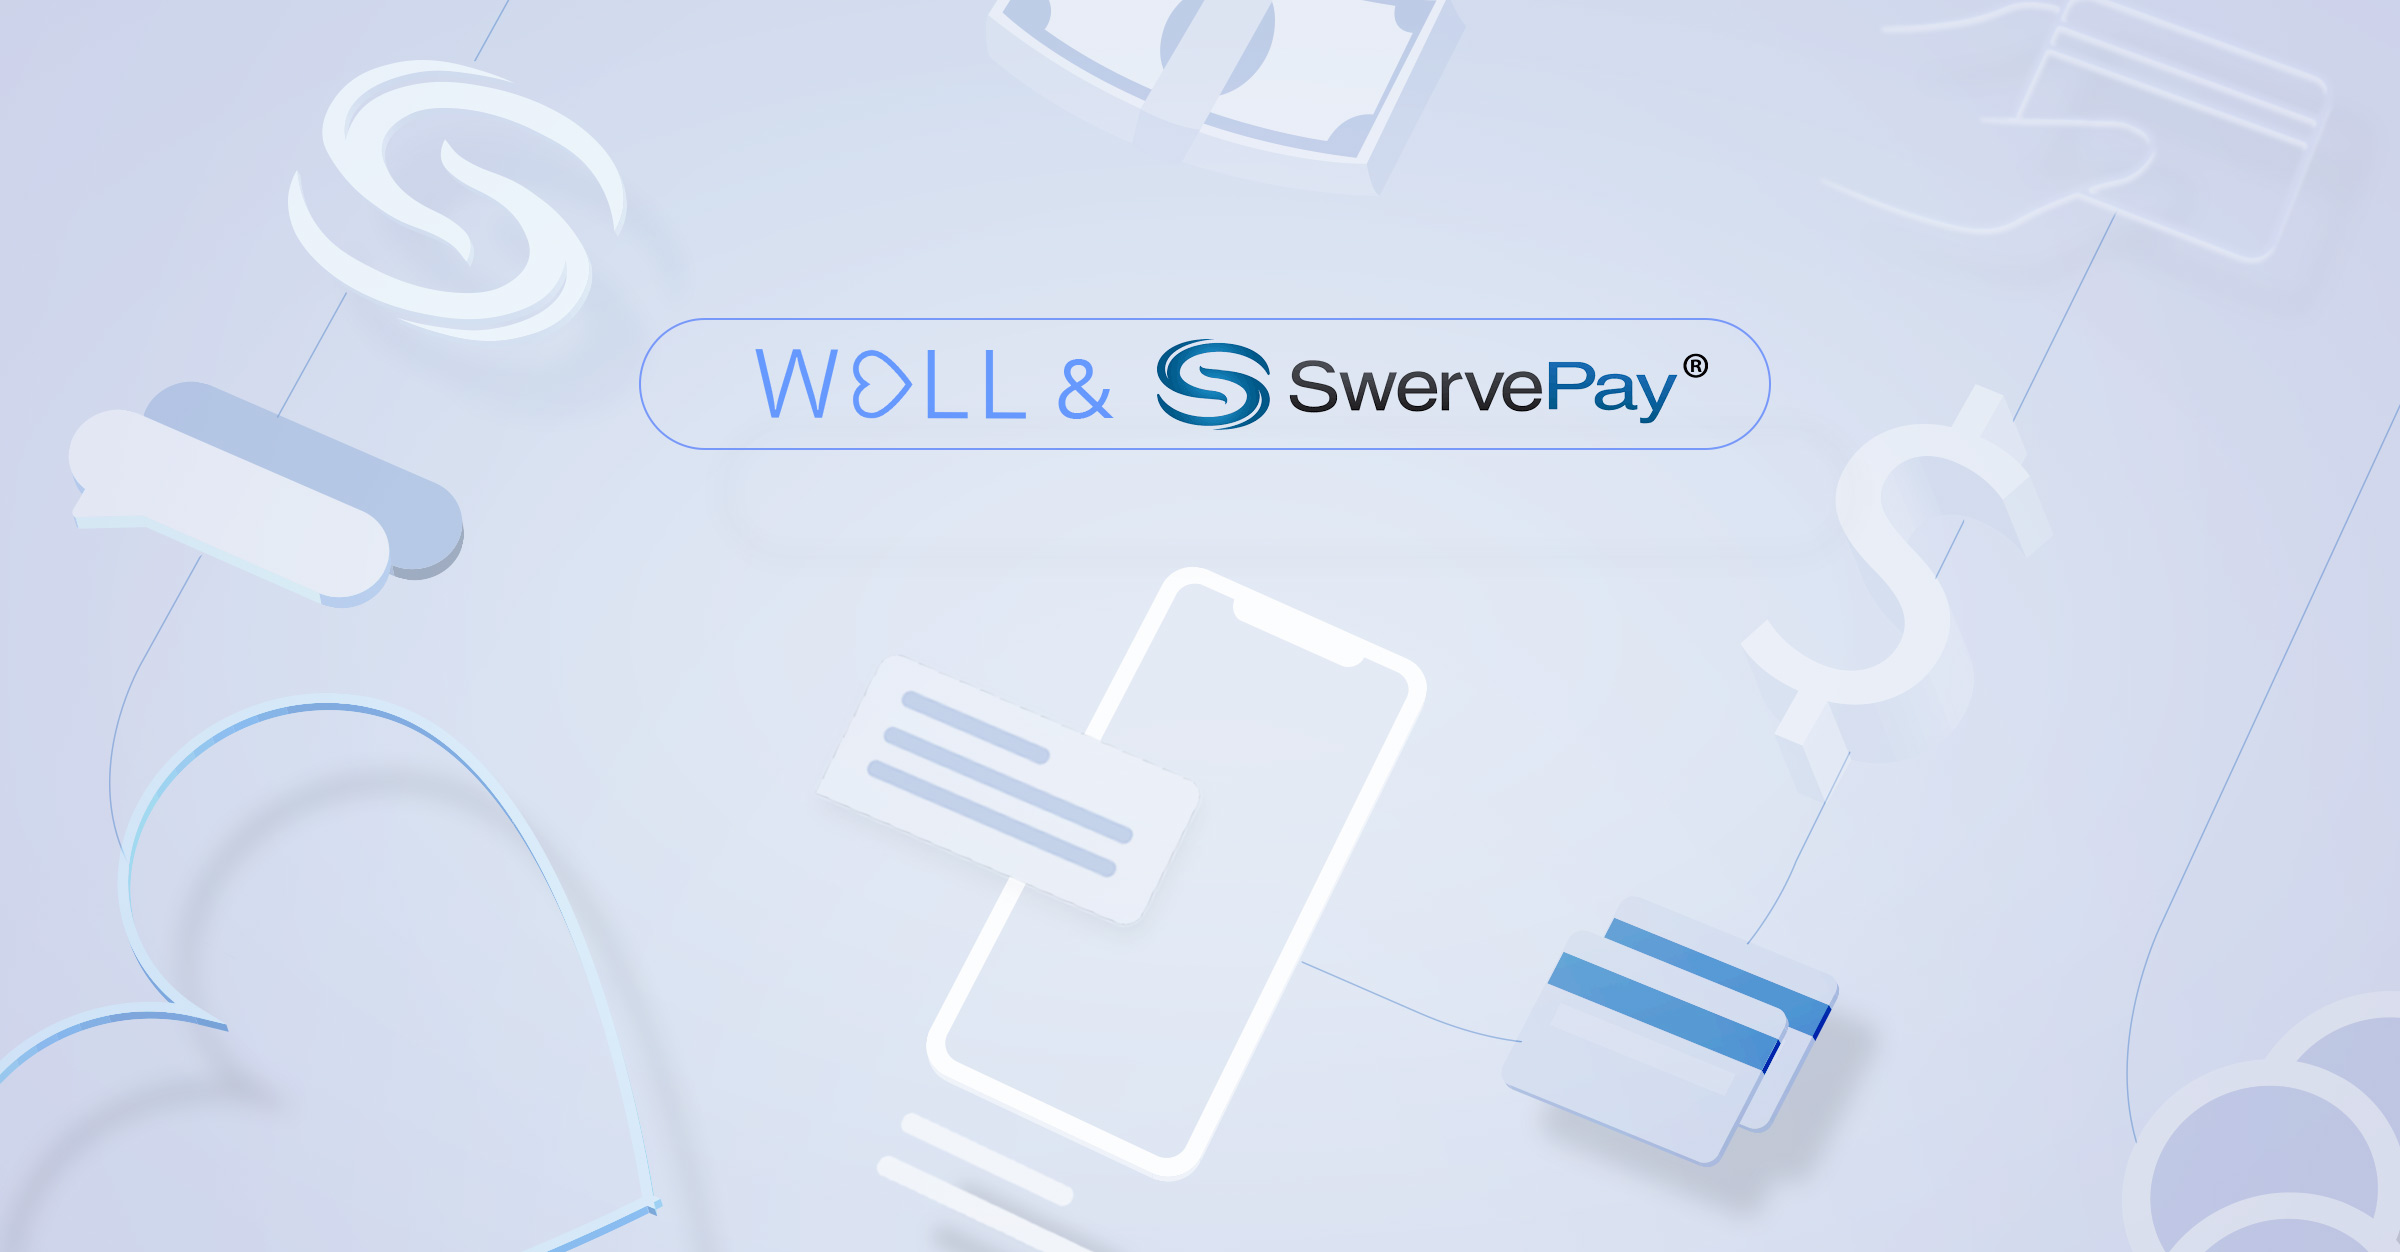 WELL partners with SwervePay to make it even easier to collect copays